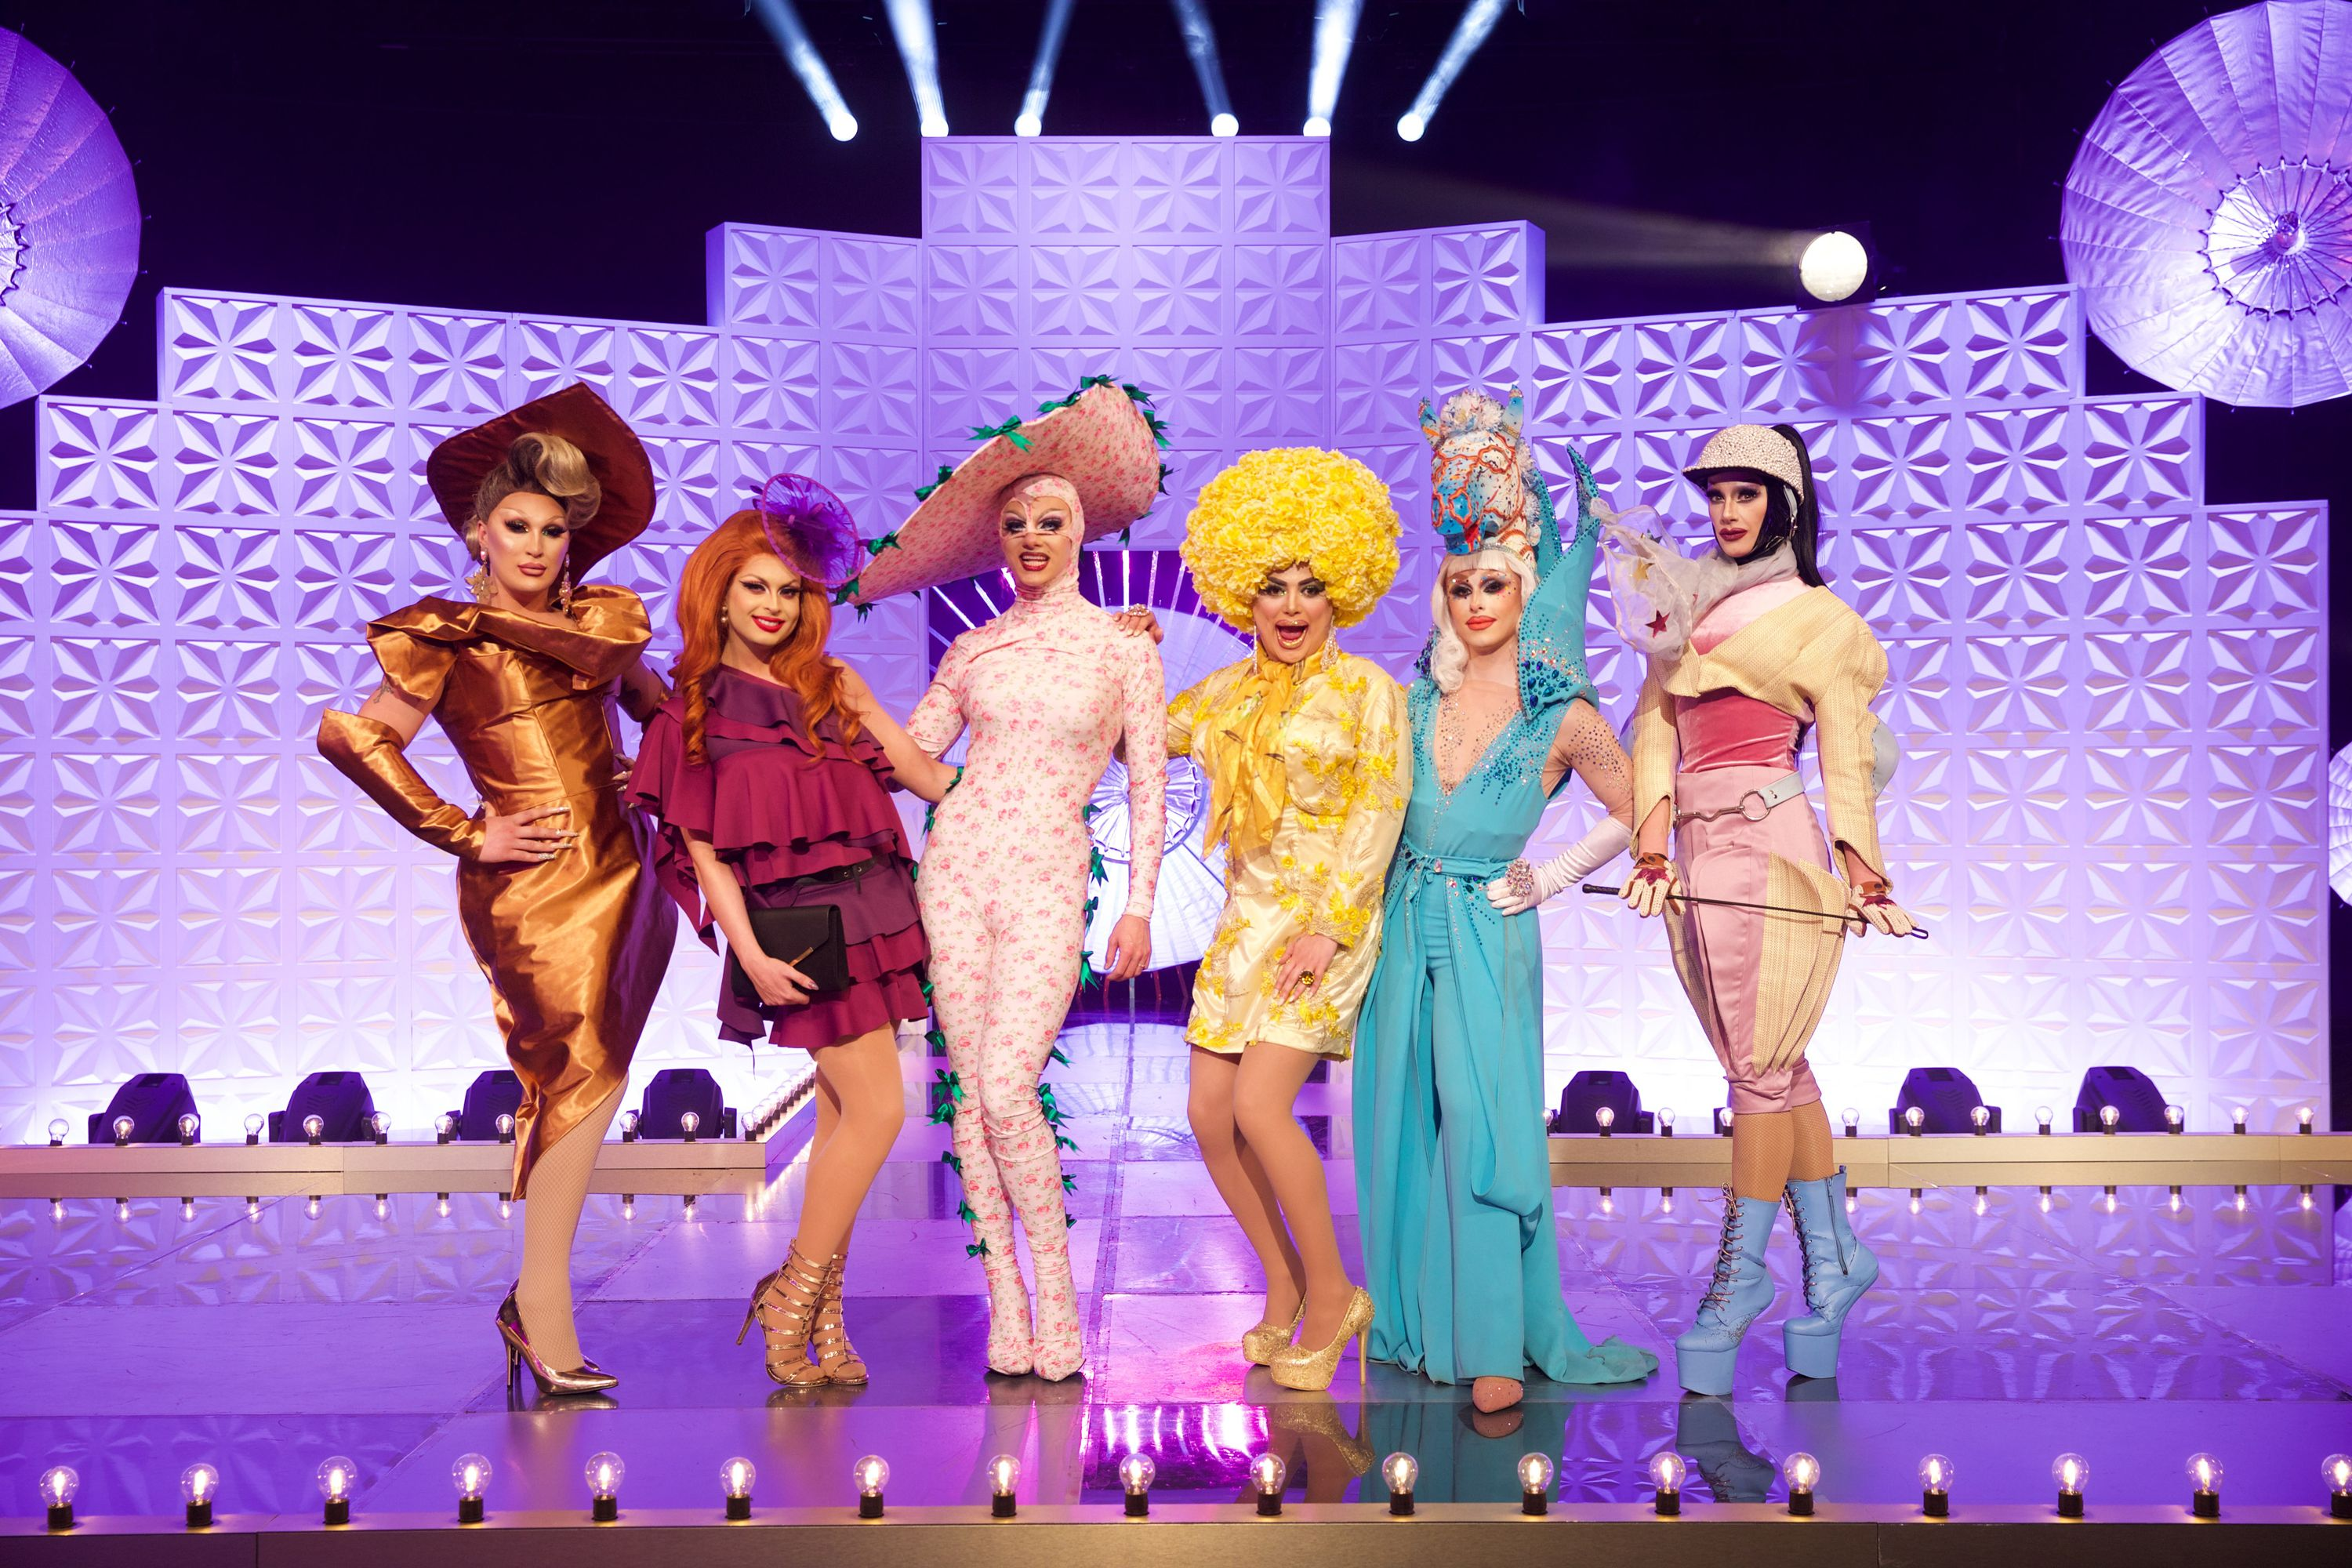 RuPaul's Drag Race UK will be airing on BBC One